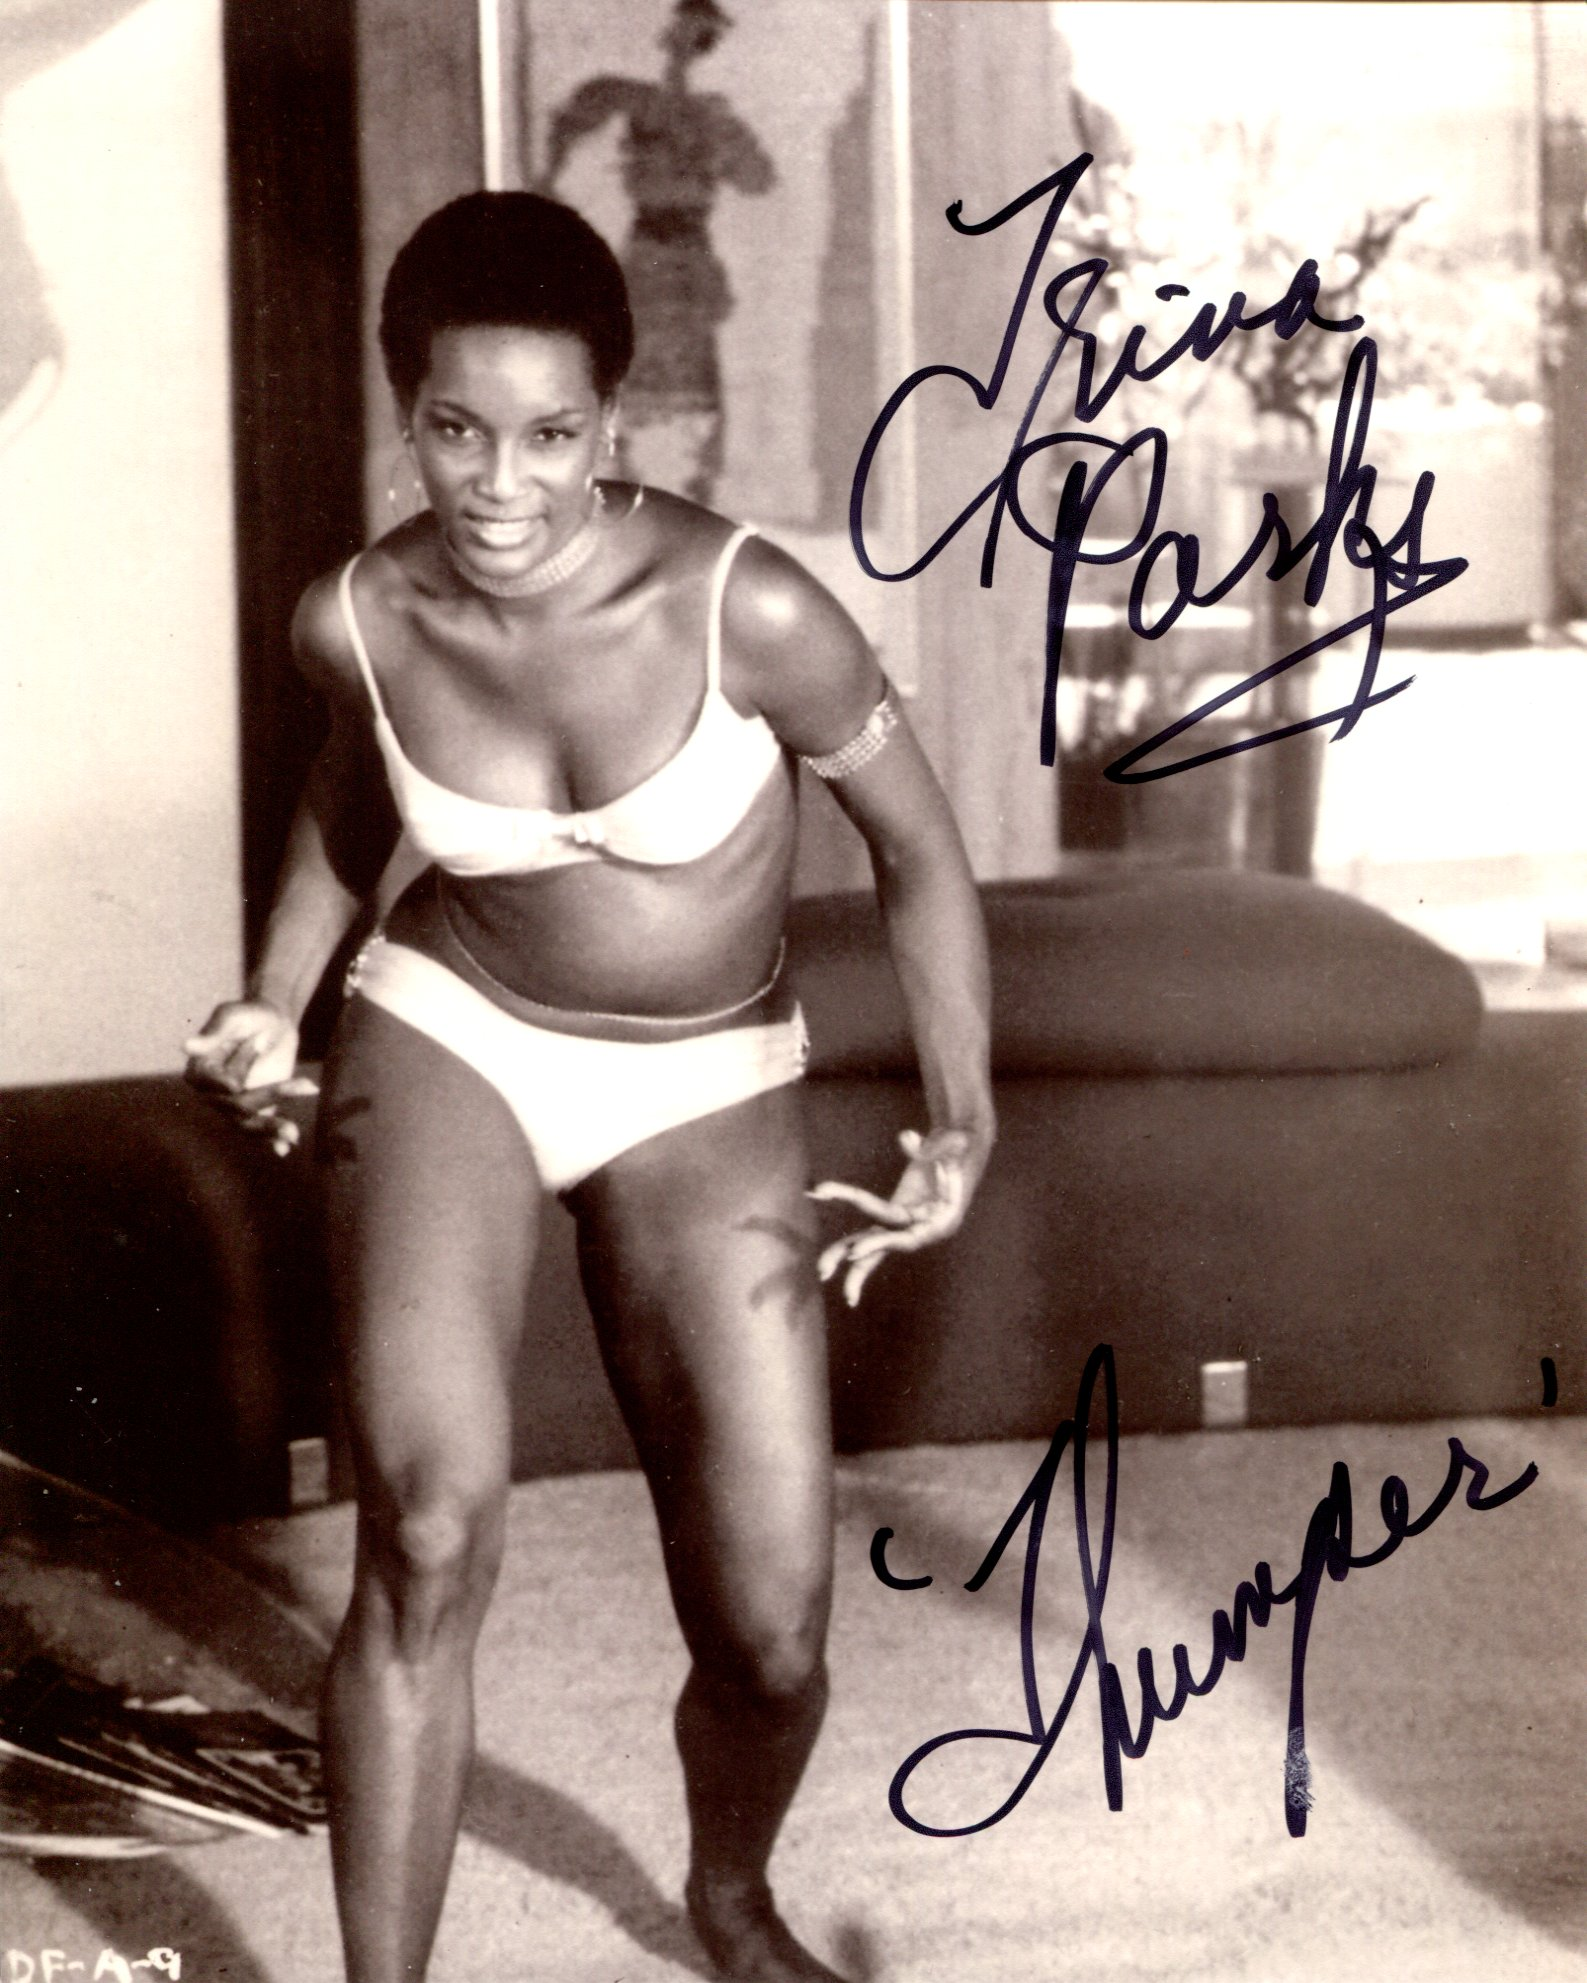 007 Bond girl Trina Parks as Thumper signed 8x10 photo from Diamonds are Forever. Good condition.